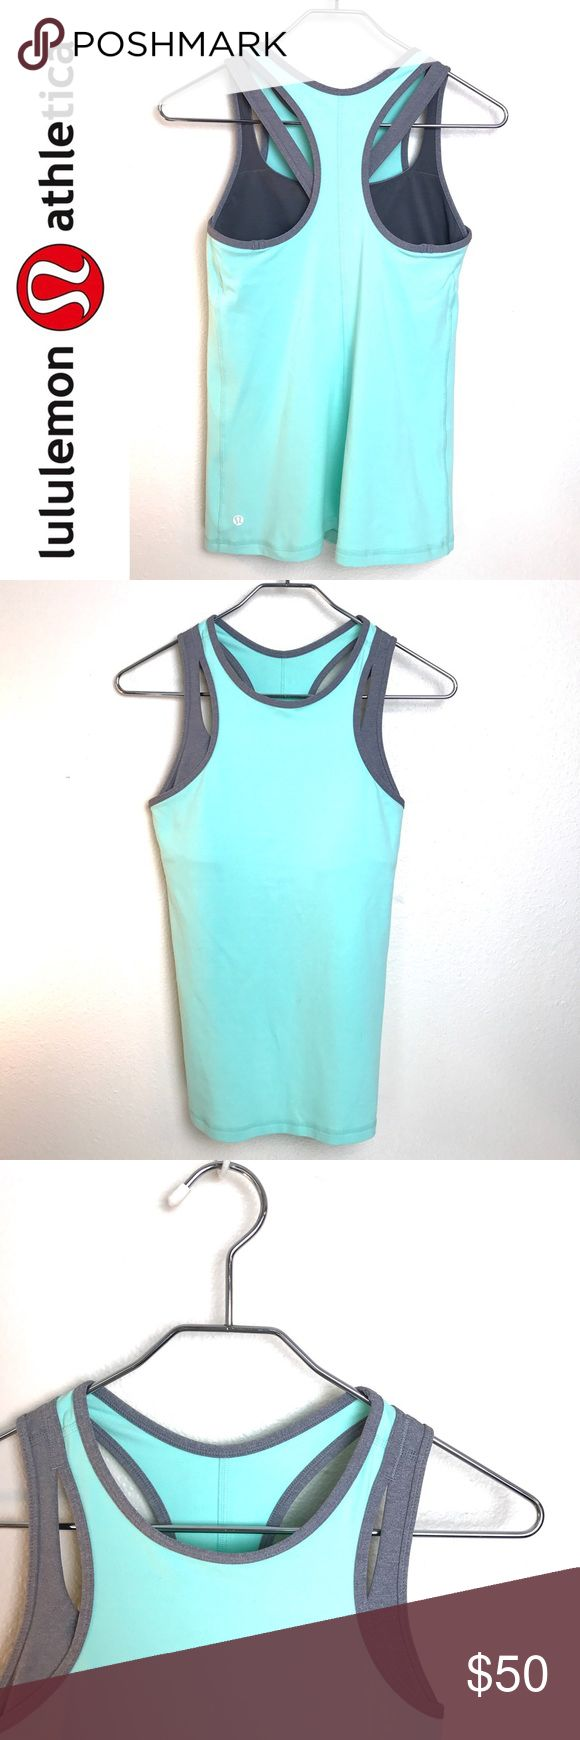 Lululemon Racerback Mint & Gray Athletic Tank Lululemon Racerback Mint Green & Gray Athletic Tank. Built in sports bra. Excellent condition. Size 6 lululemon athletica Tops Tank Tops